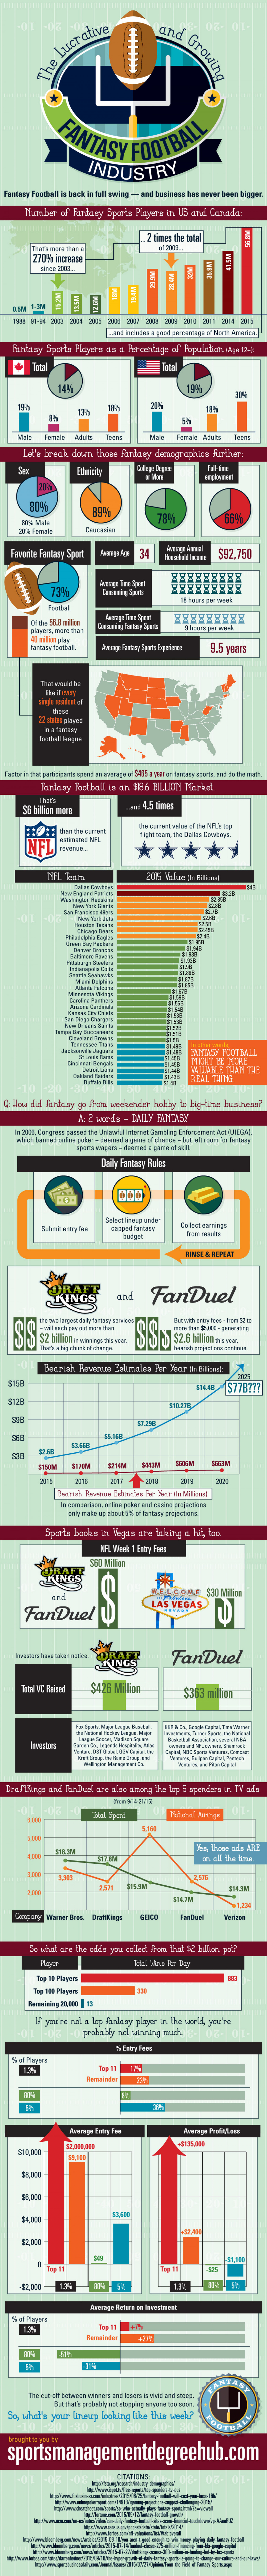 The Lucrative and Growing Fantasy Football Industry Infographic